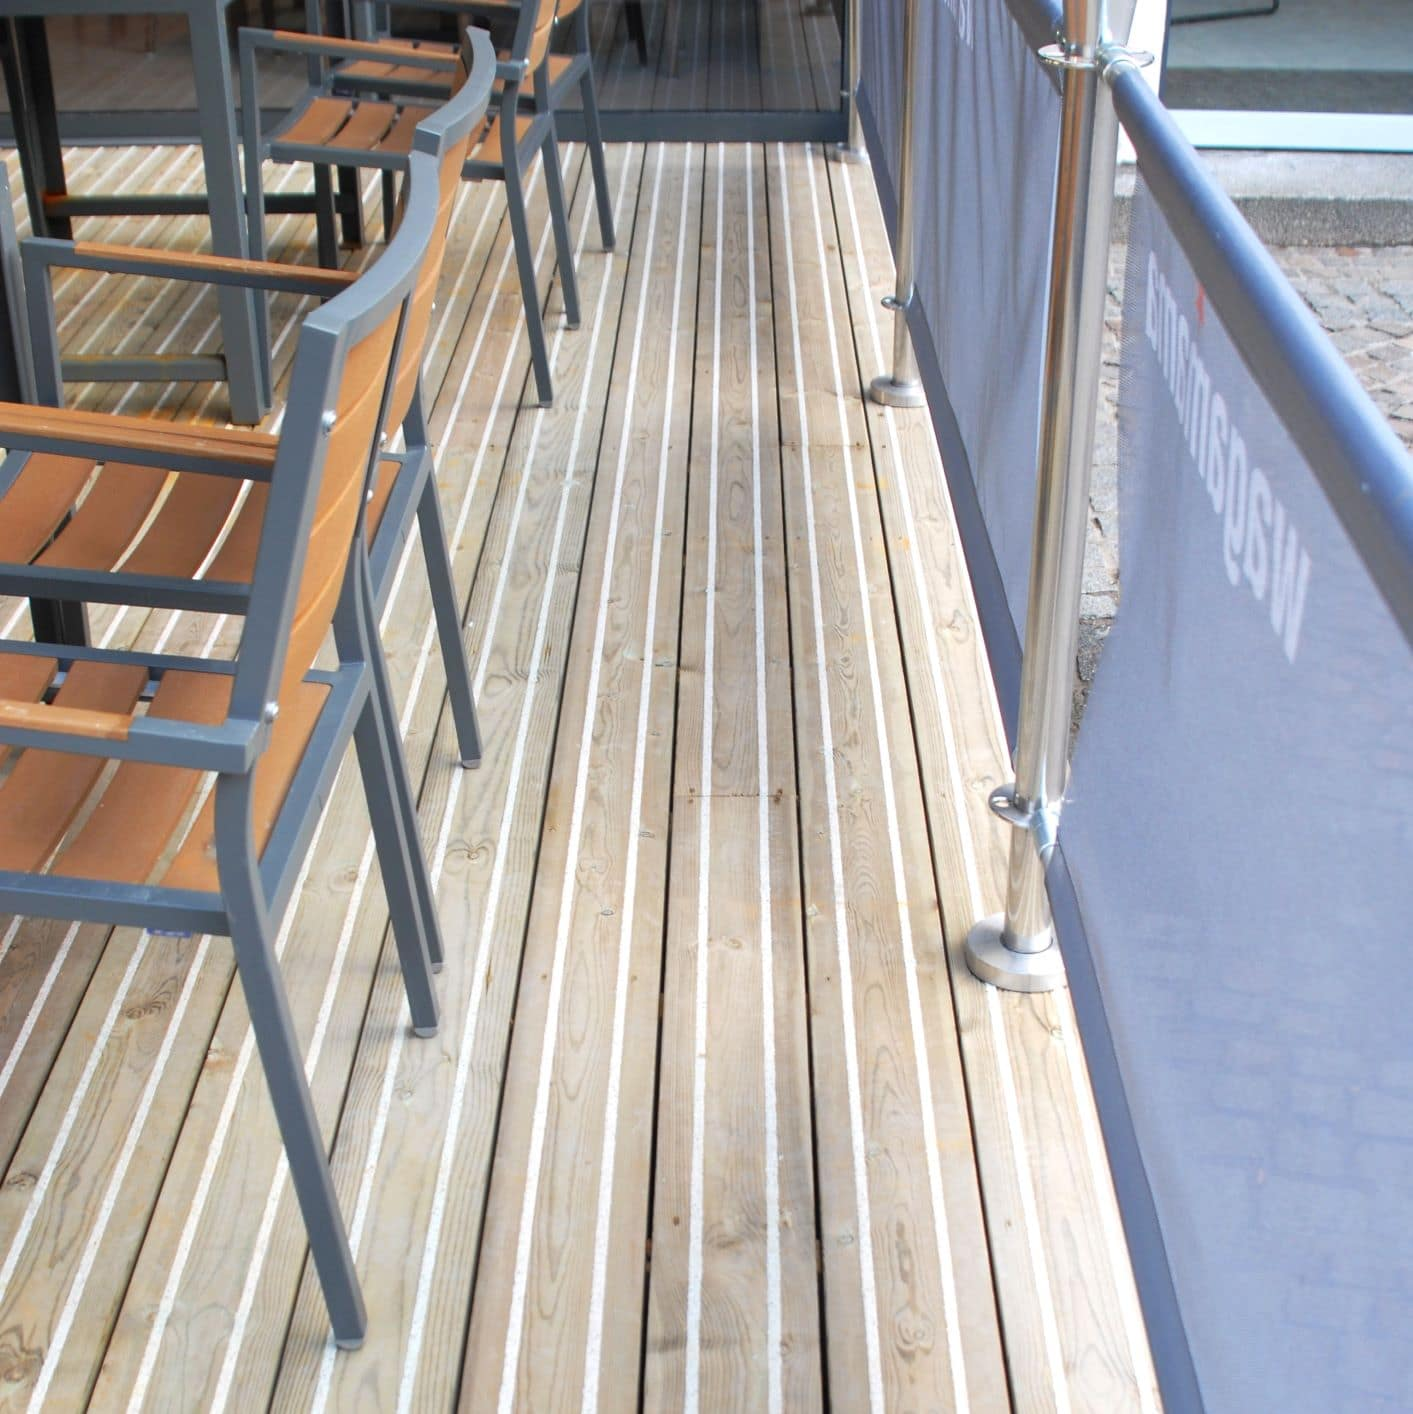 Decking on restaurant floor